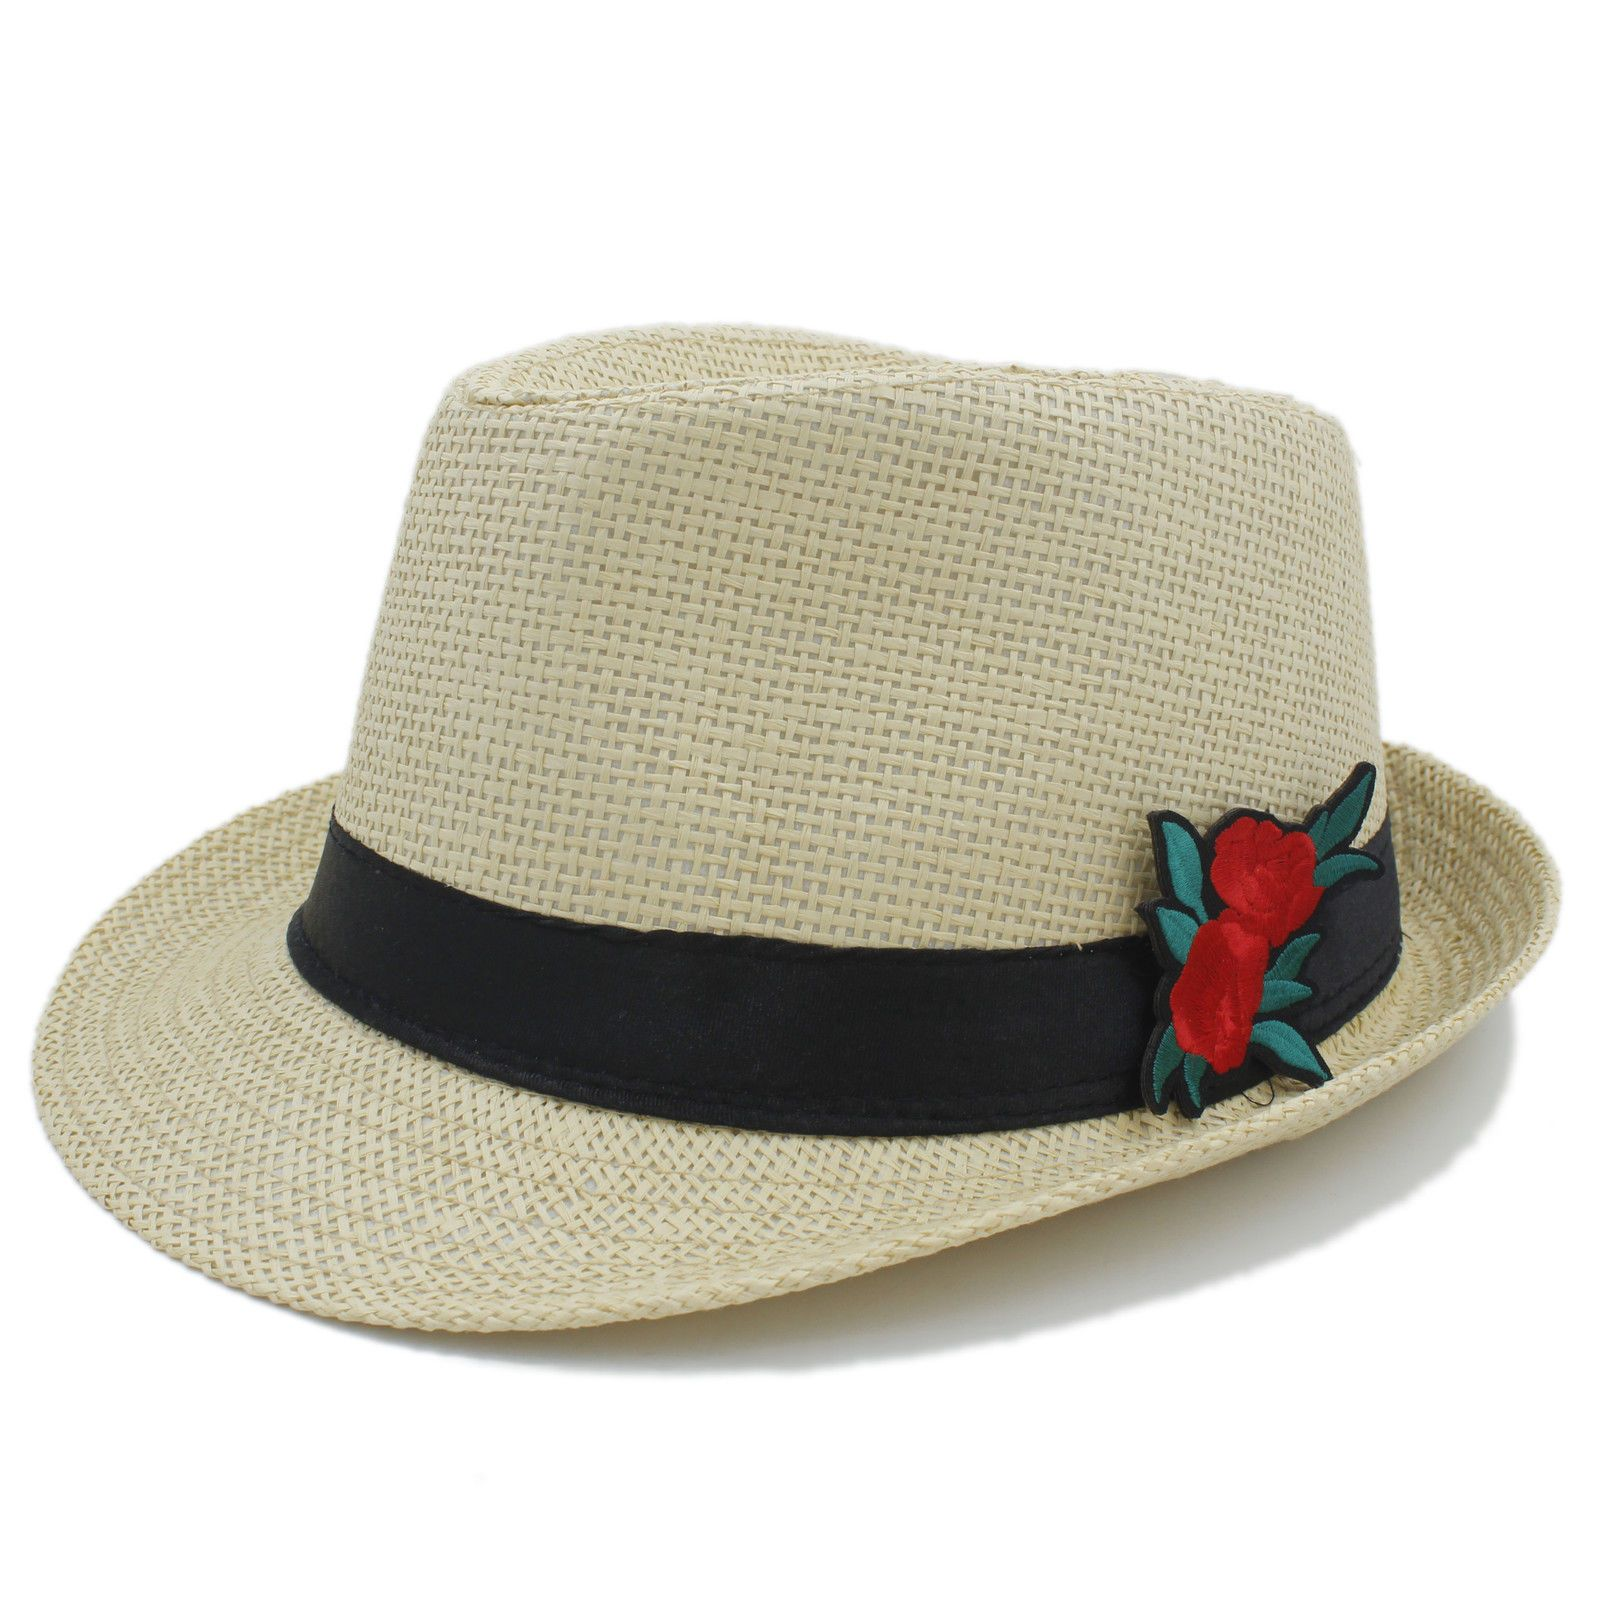 82884930 Women Men Summer Straw Boater Sun Hat Lady Beach Fedora Hat Gentleman  Panama Cap #ebay #Fashion